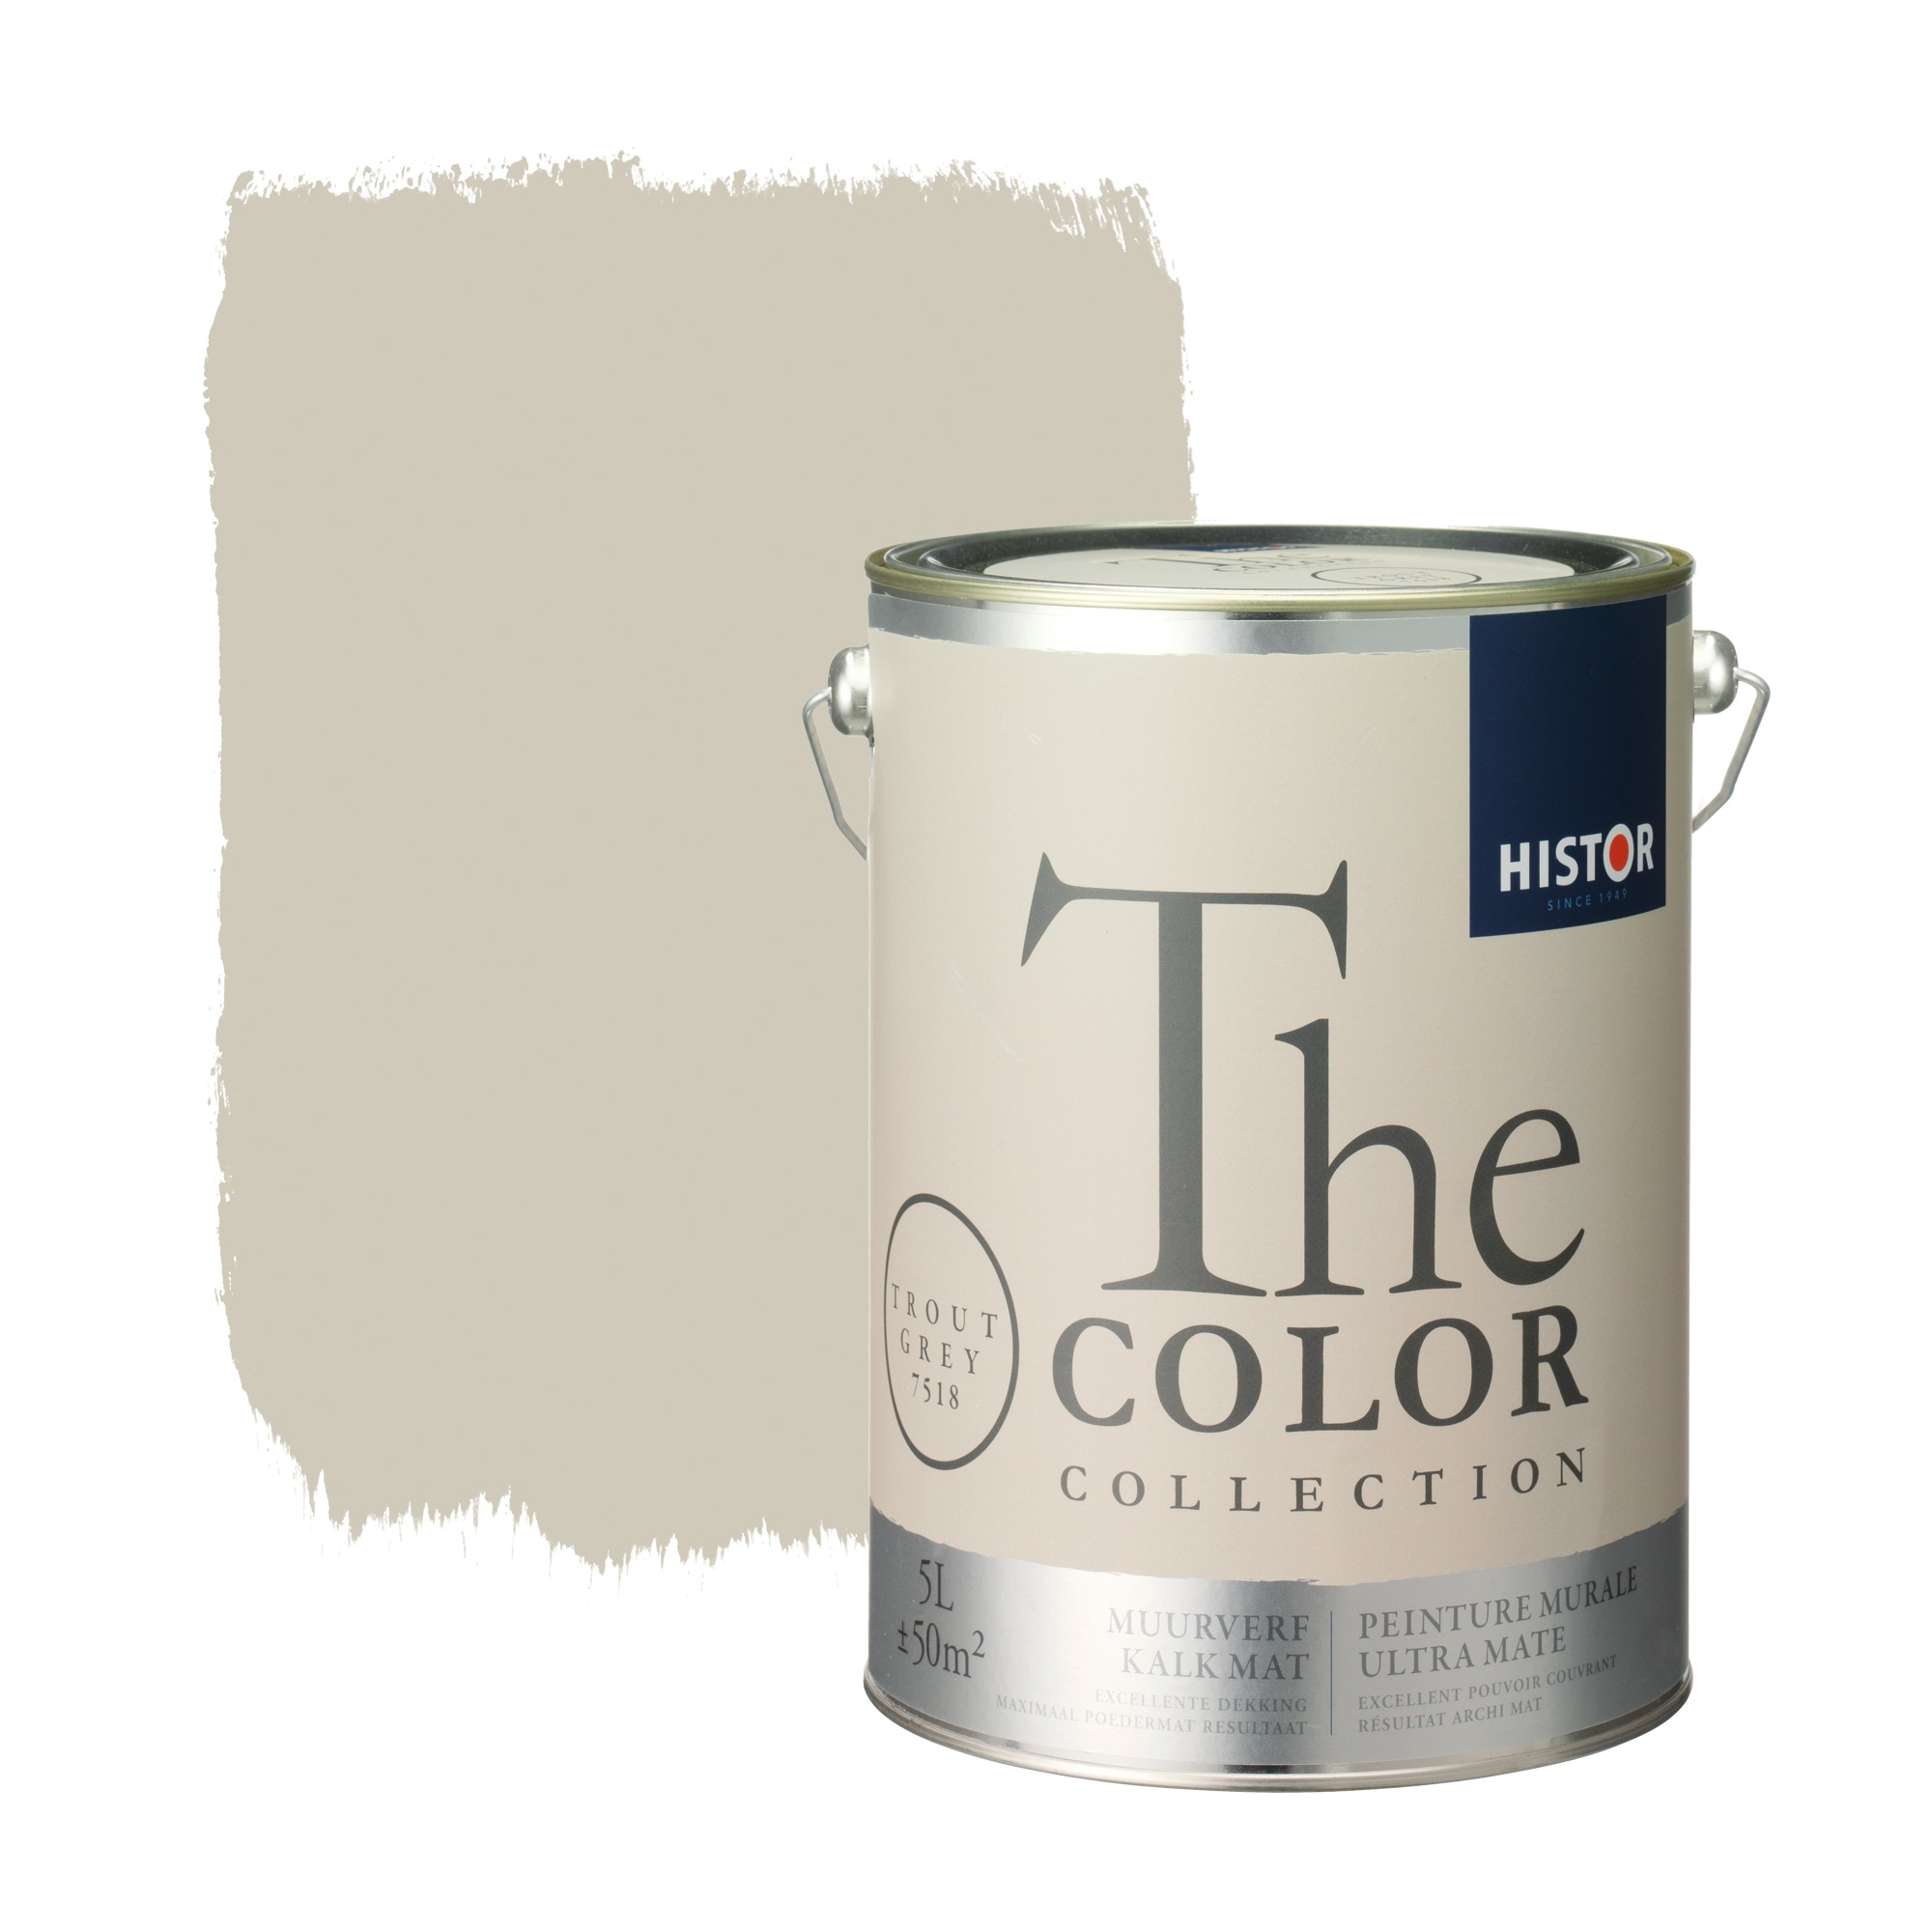 Histor the color collection muurverf kalkmat trout grey 7518 5 l